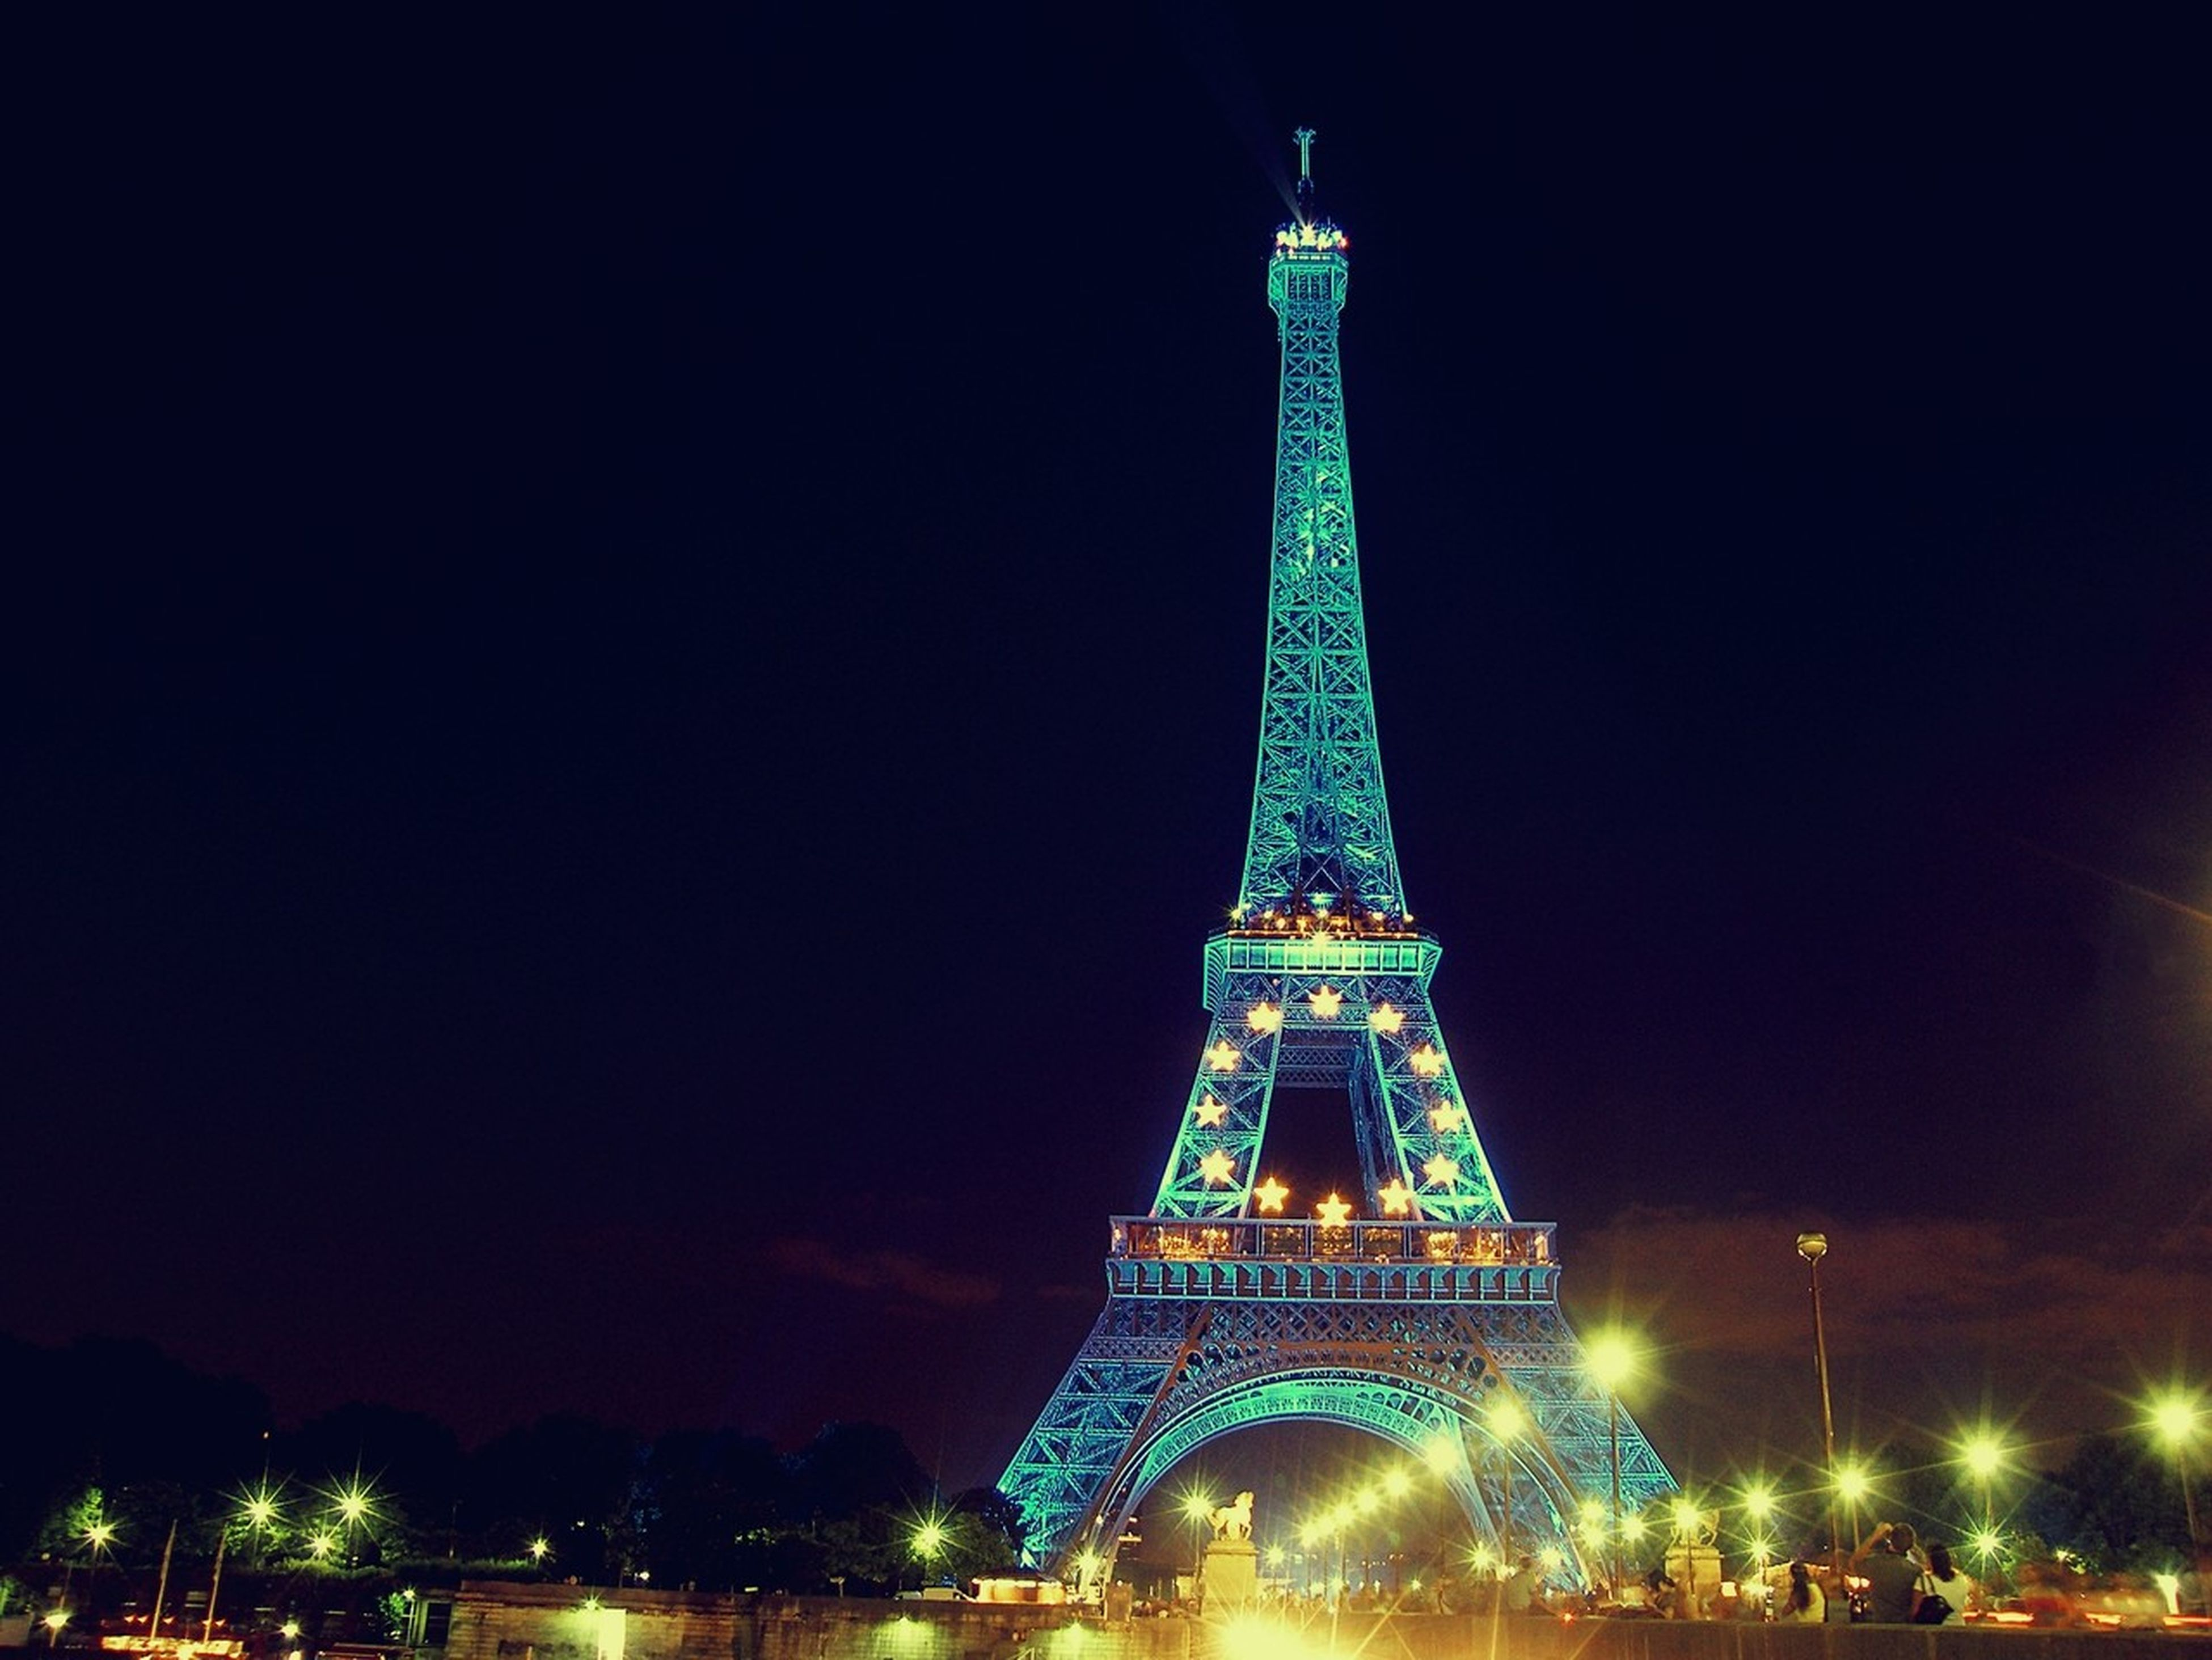 illuminated, night, architecture, famous place, built structure, travel destinations, international landmark, tourism, capital cities, travel, city, eiffel tower, building exterior, low angle view, tower, sky, long exposure, tall - high, clear sky, bridge - man made structure